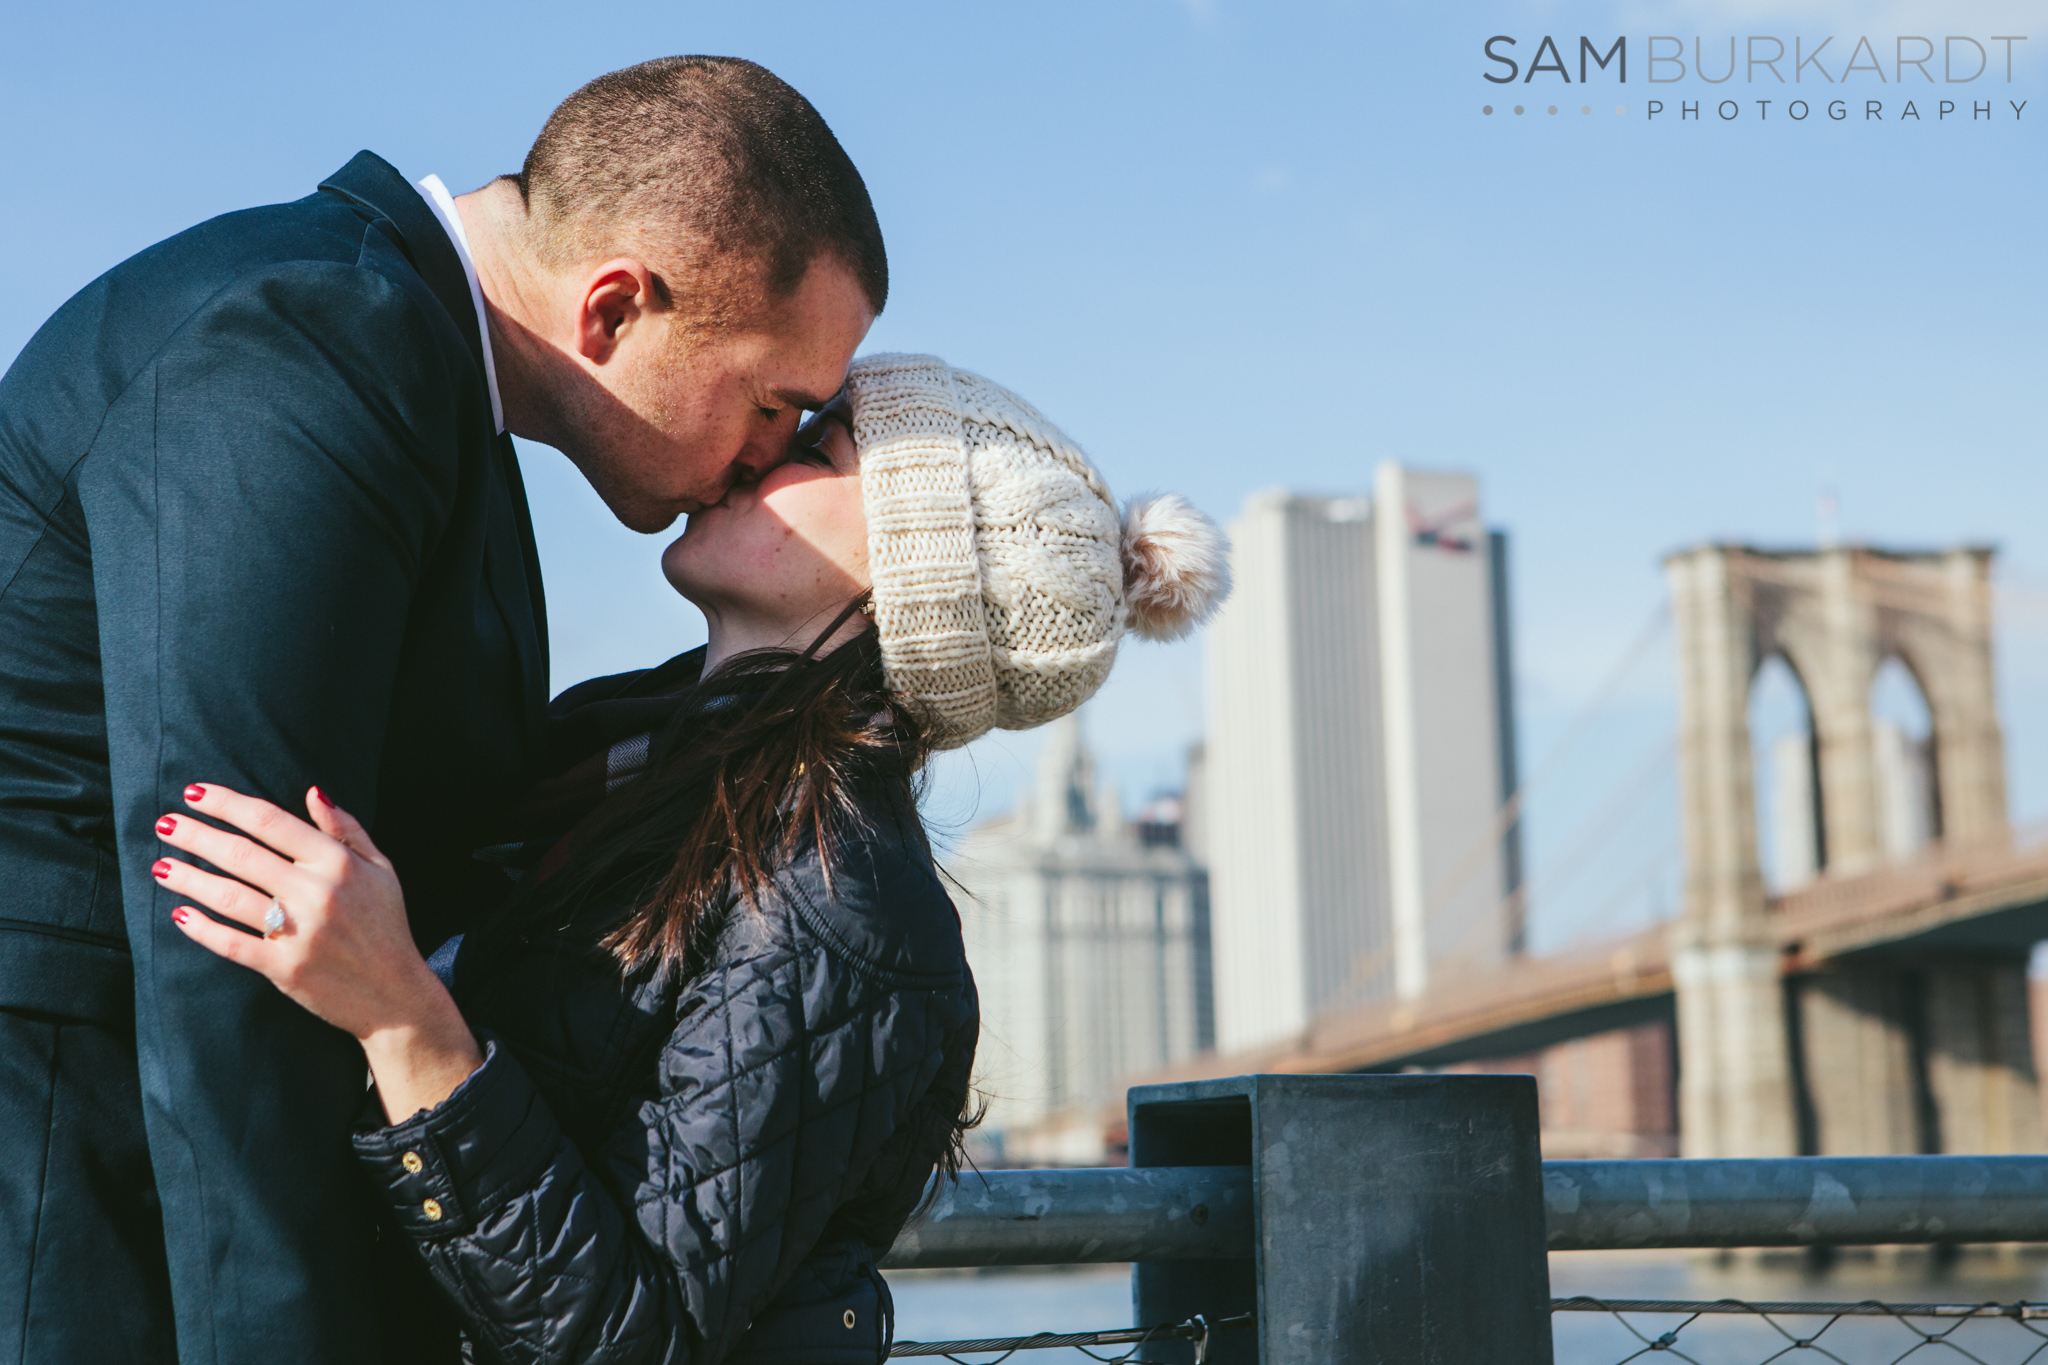 samburkardt_brooklyn_bridge_new_york_engagement_proposal_skyline_0013.jpg